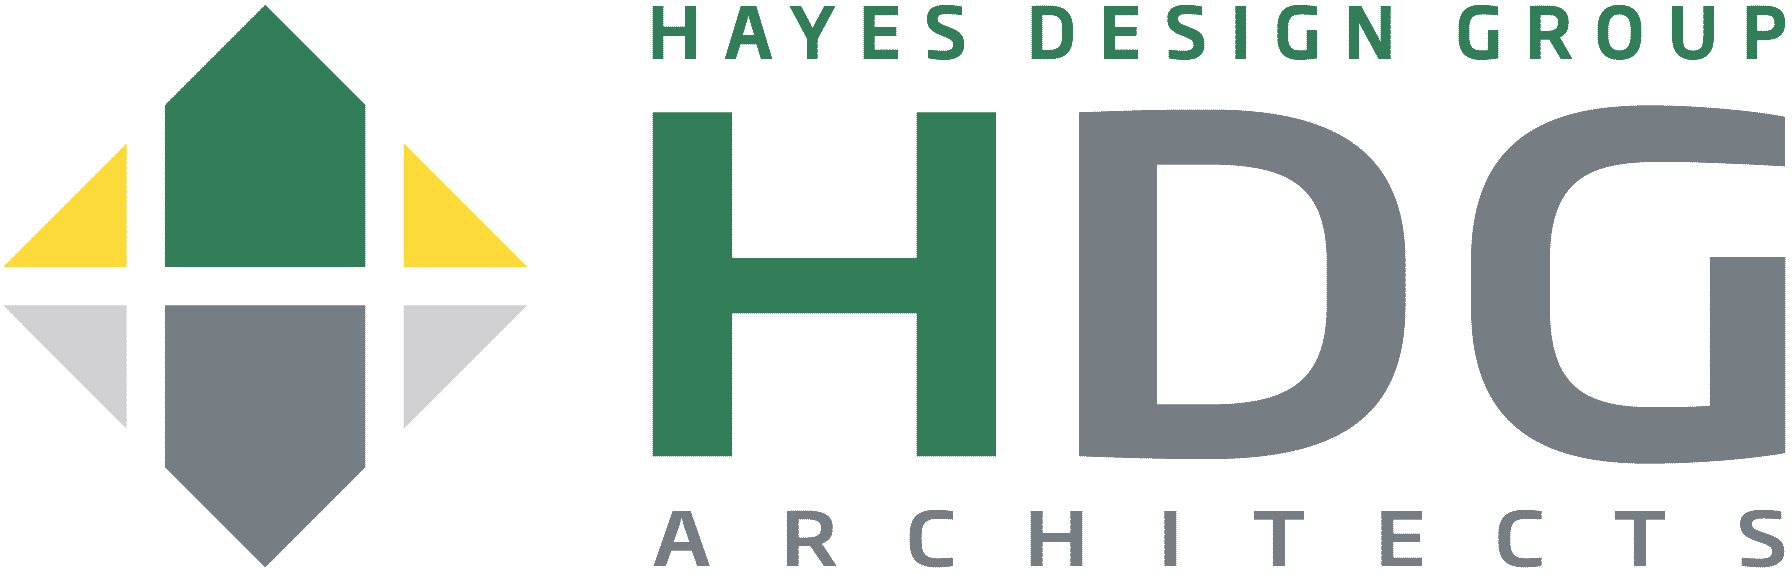 home hayes design group architects pittsburgh pa